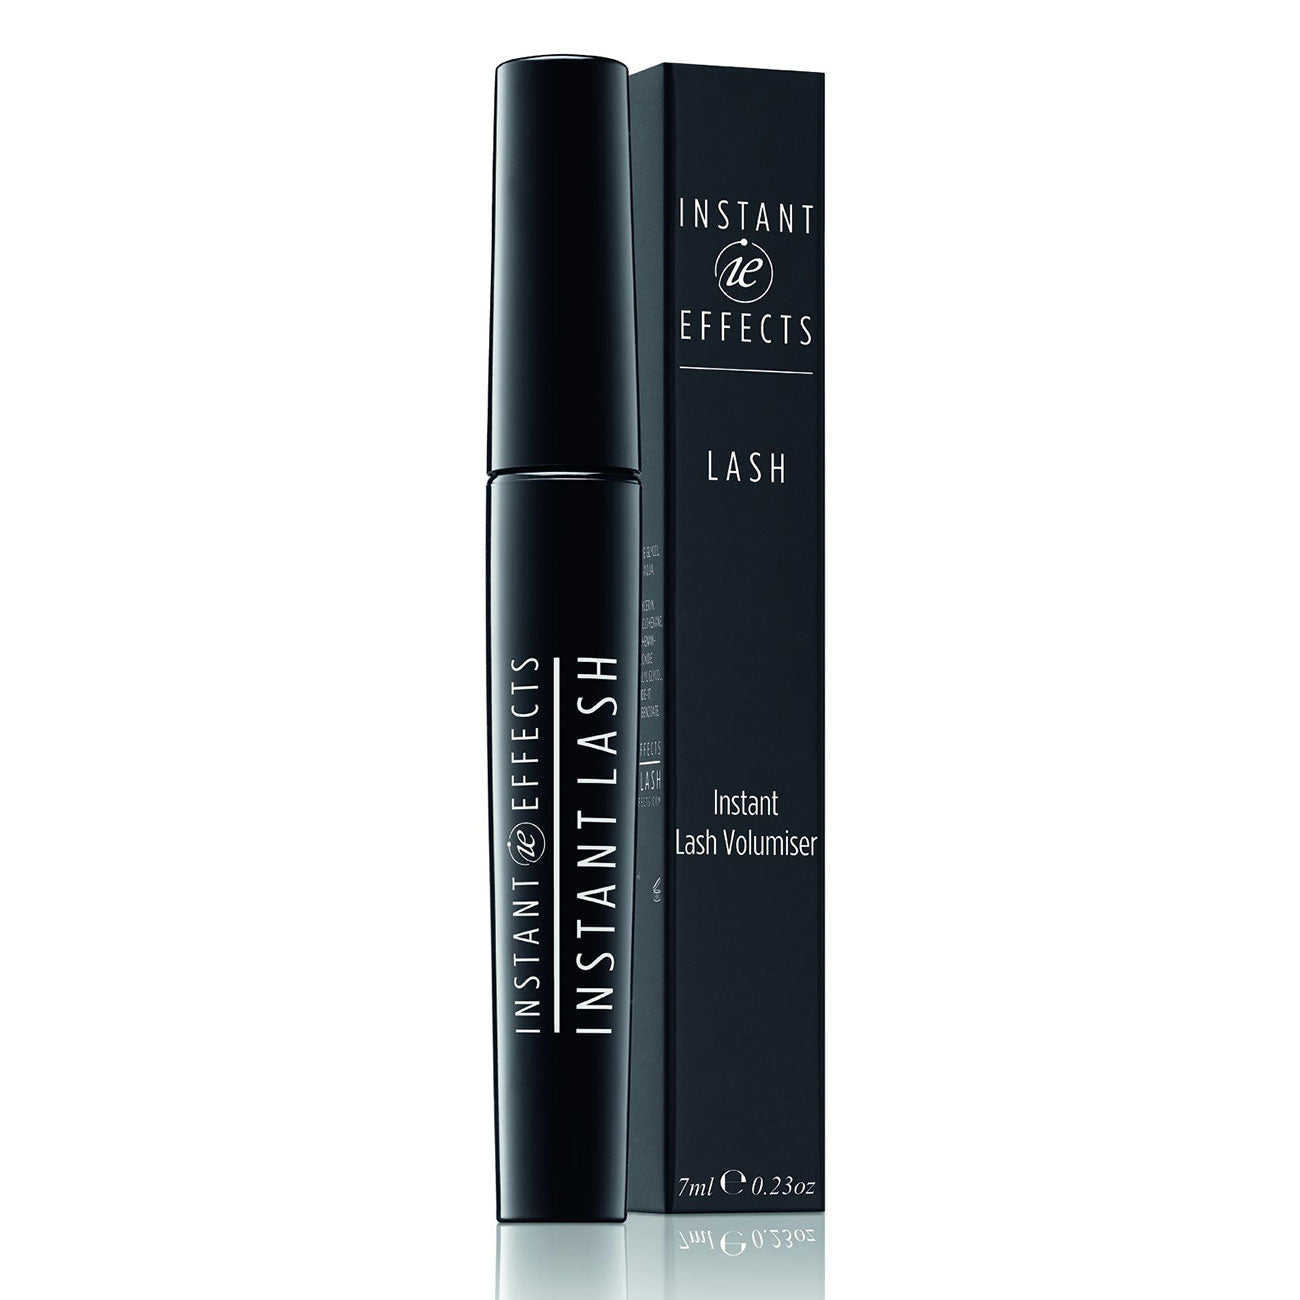 Instant Effects Lash and Brow Volumizer 7ml / 0.23 fl oz